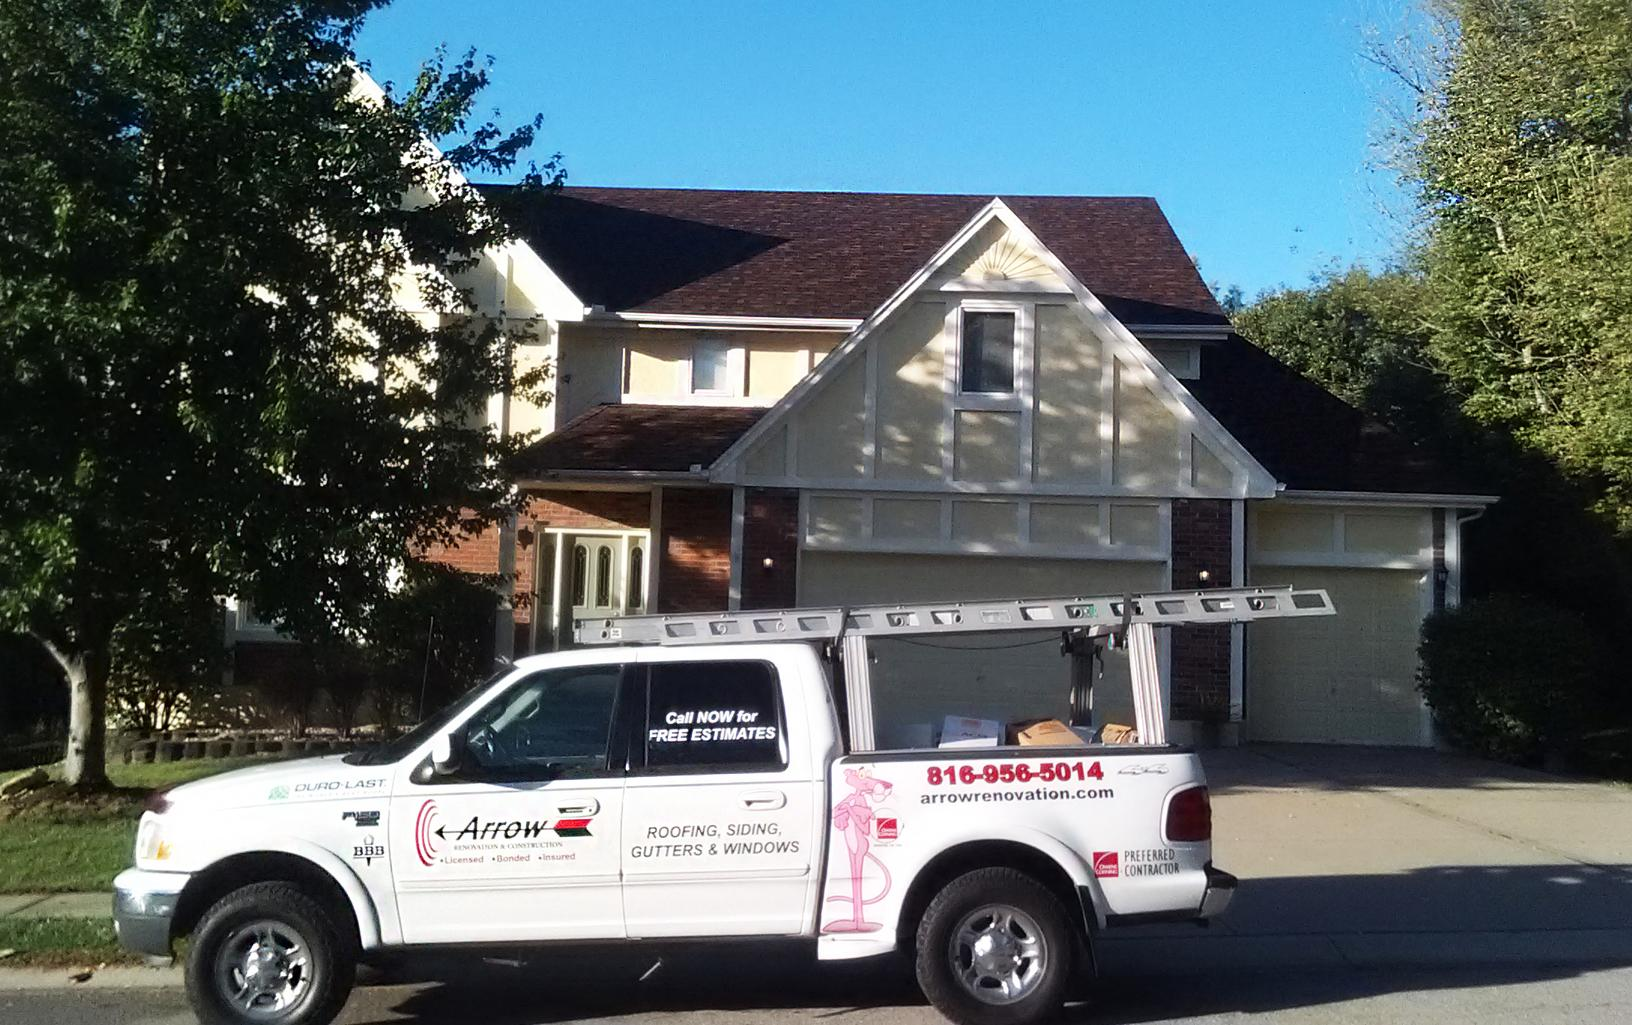 Roof Replacement Company in Blue Springs, MO - After Photo